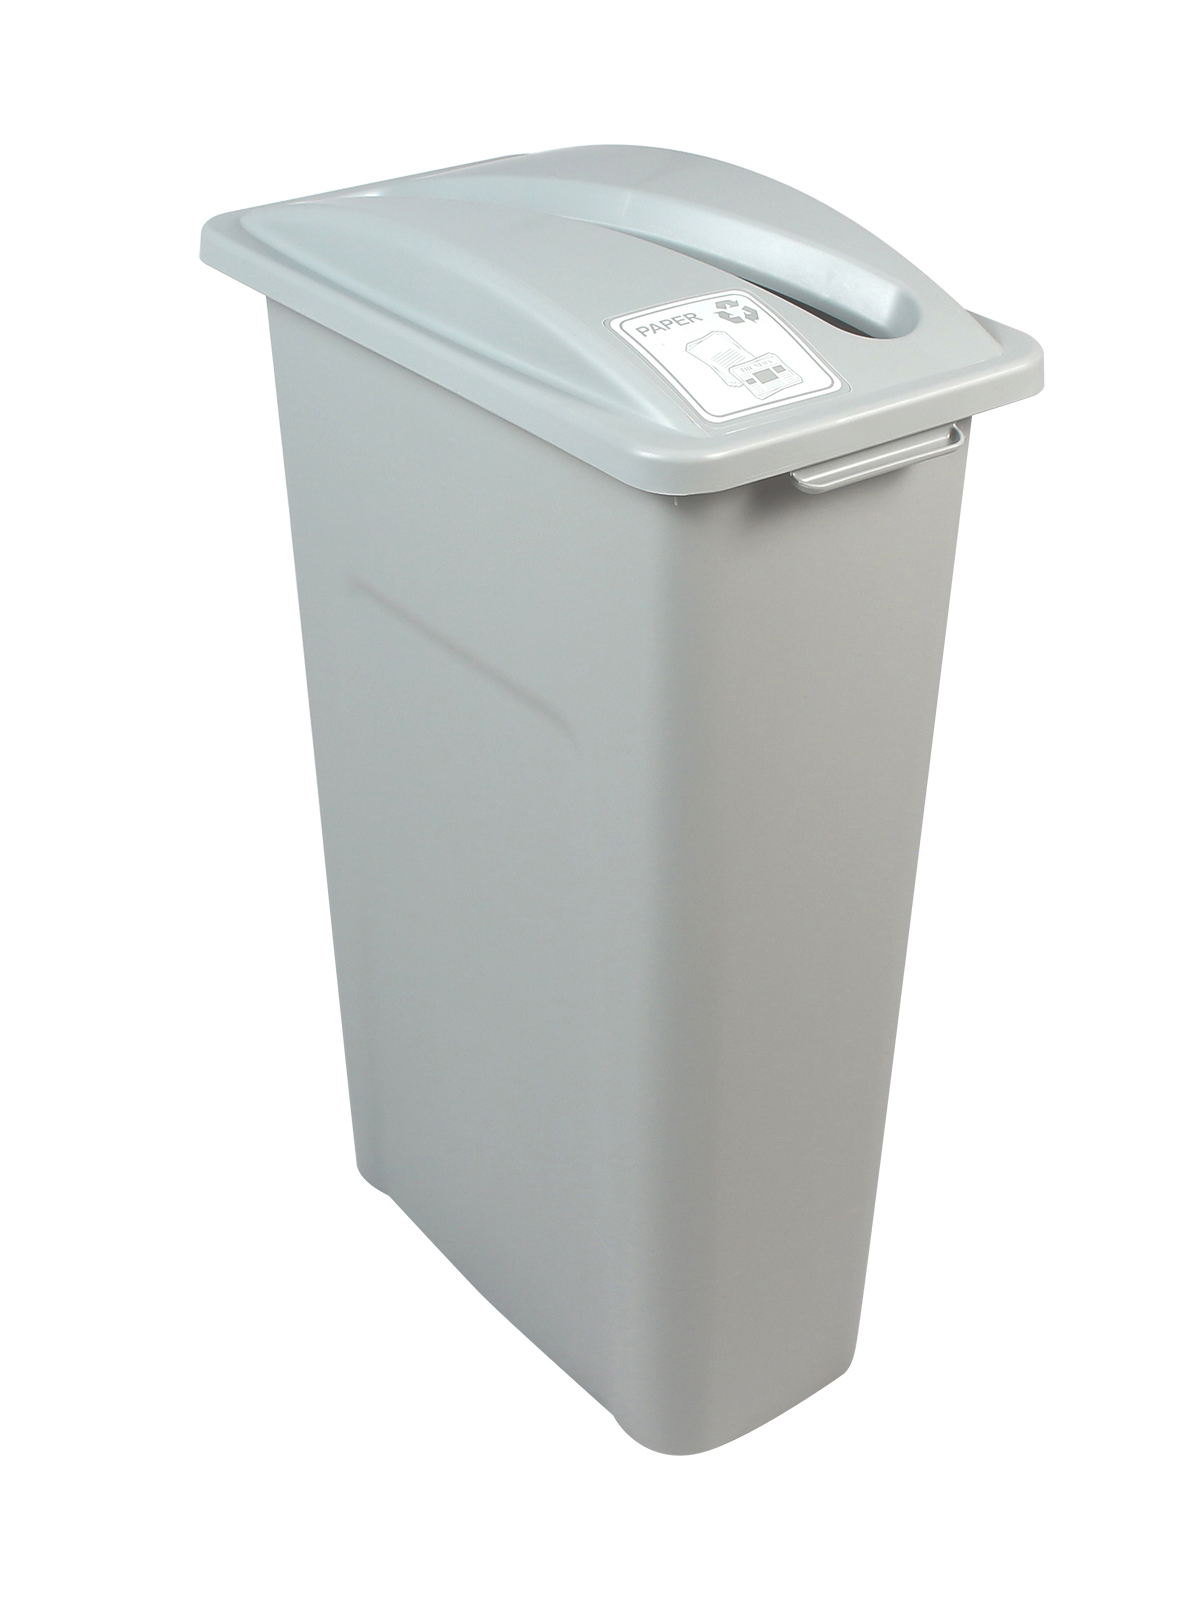 WASTE WATCHER - Single - Paper - Slot - Grey